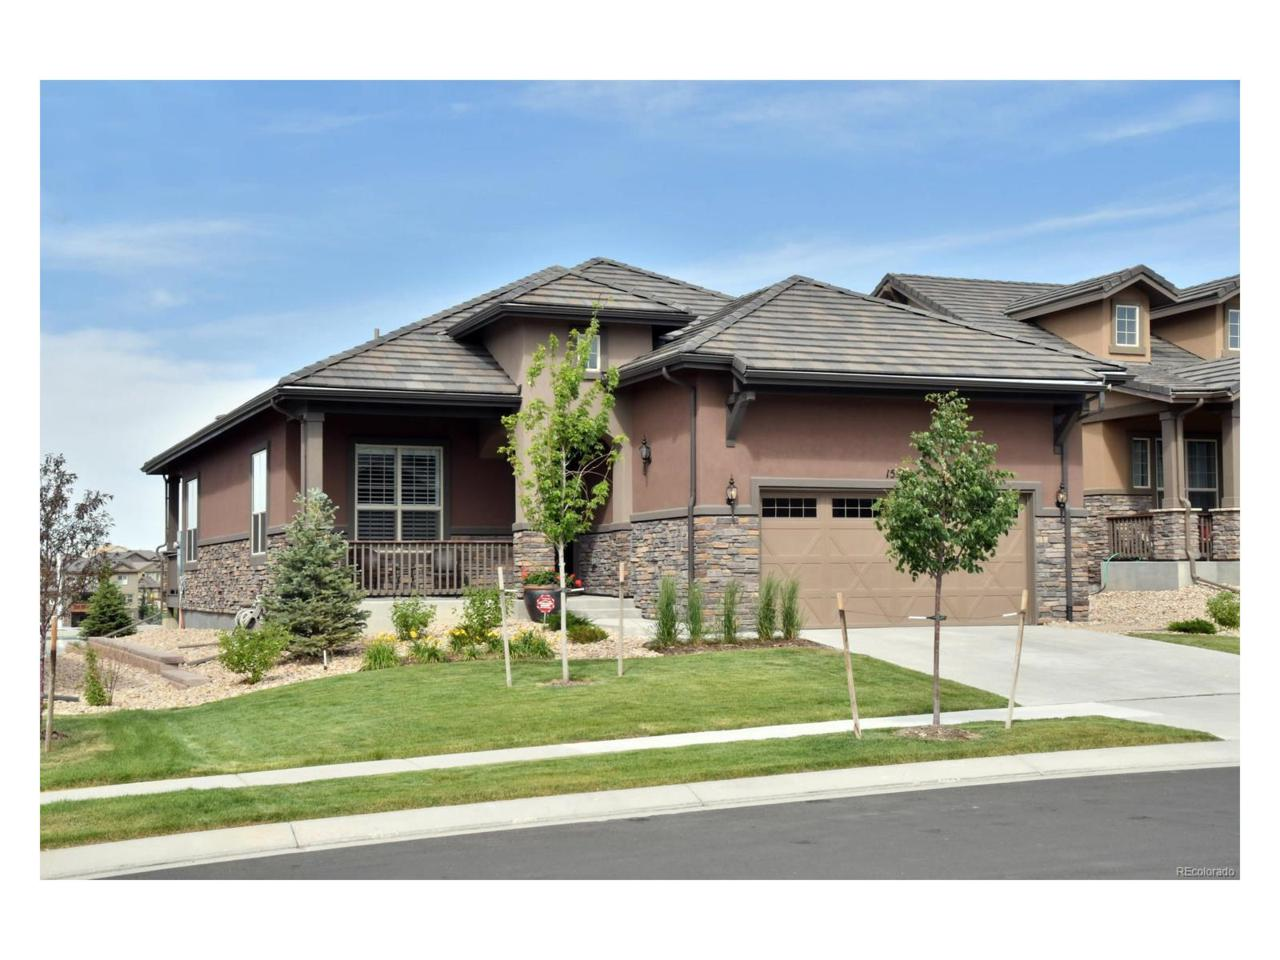 15924 Wild Horse Drive, Broomfield, CO 80023 (MLS #9252756) :: 8z Real Estate